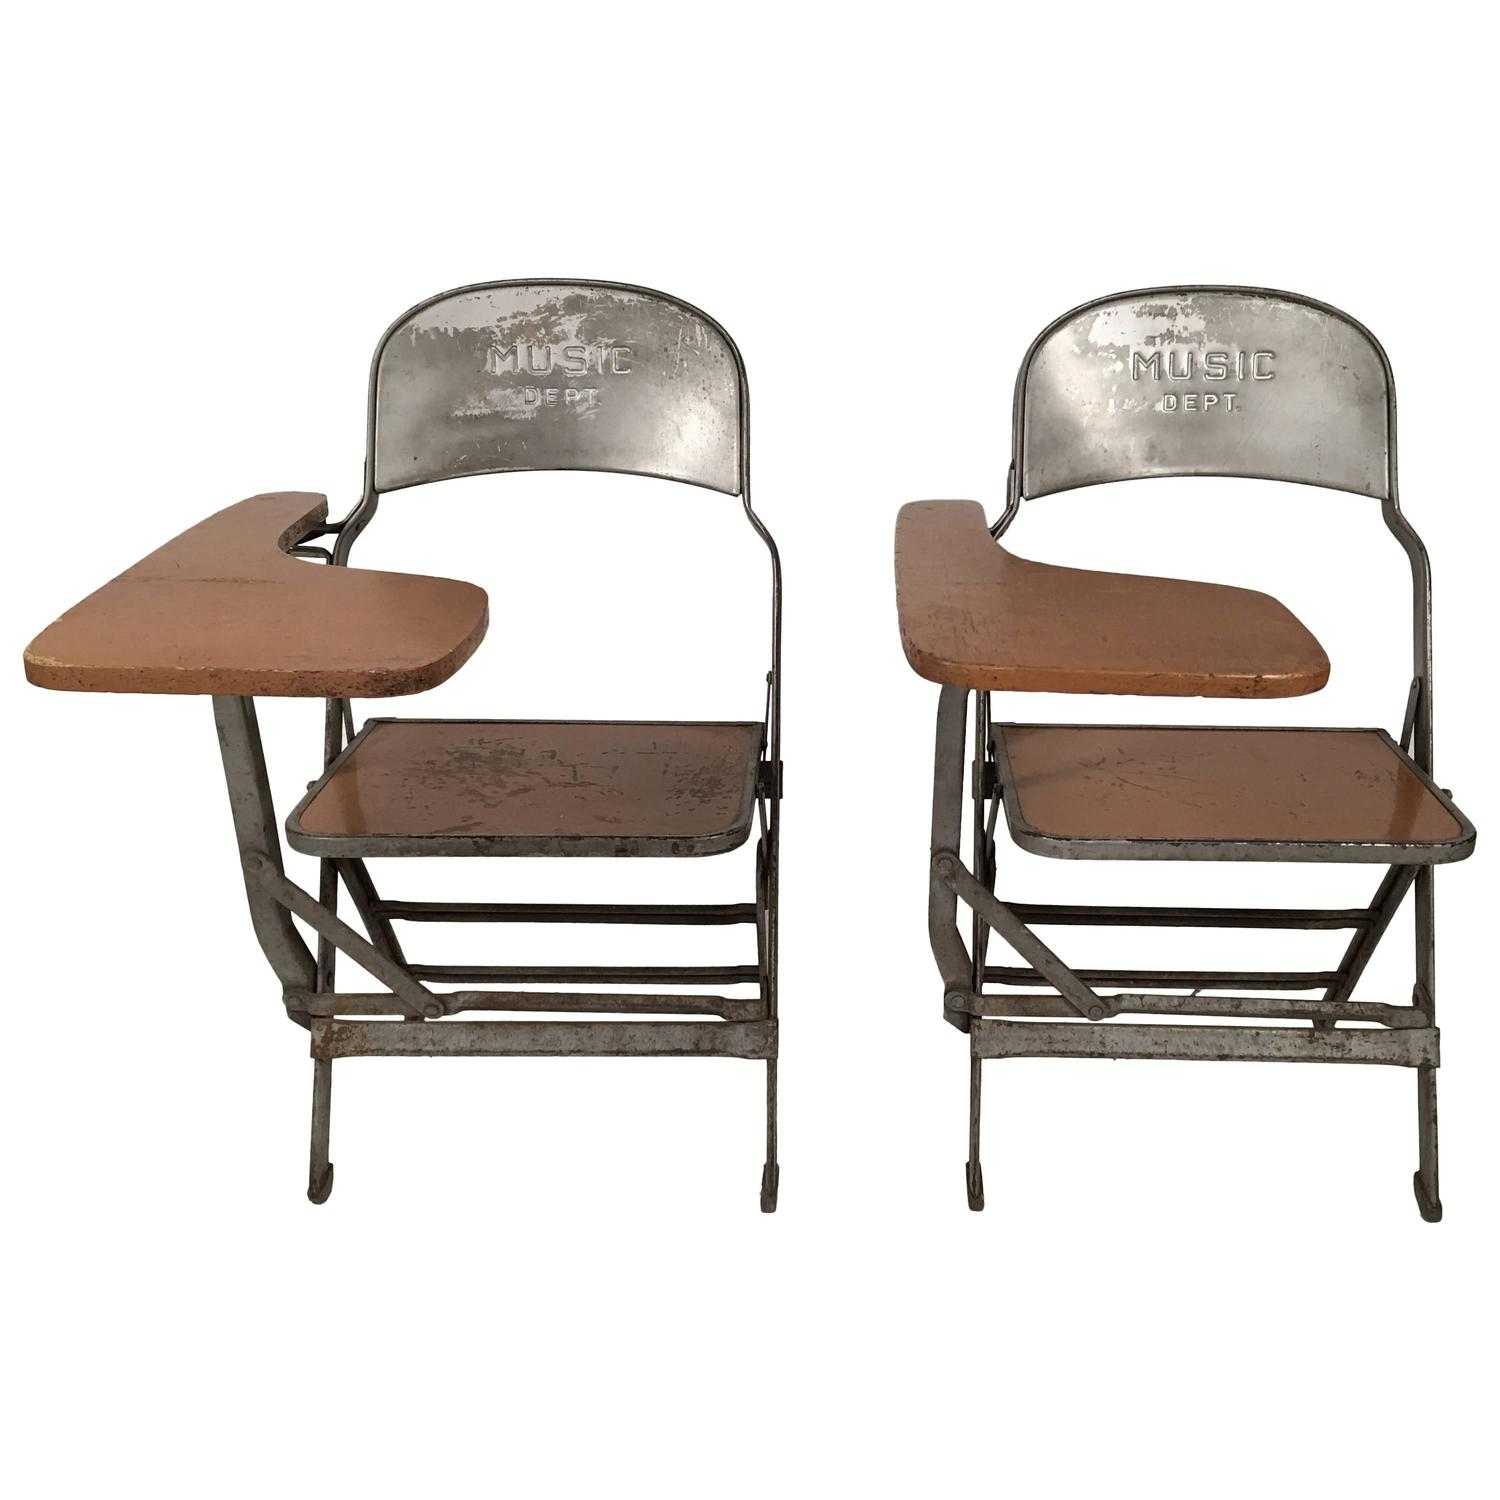 folding chair with desk world market furniture dining chairs pair of music department arms for